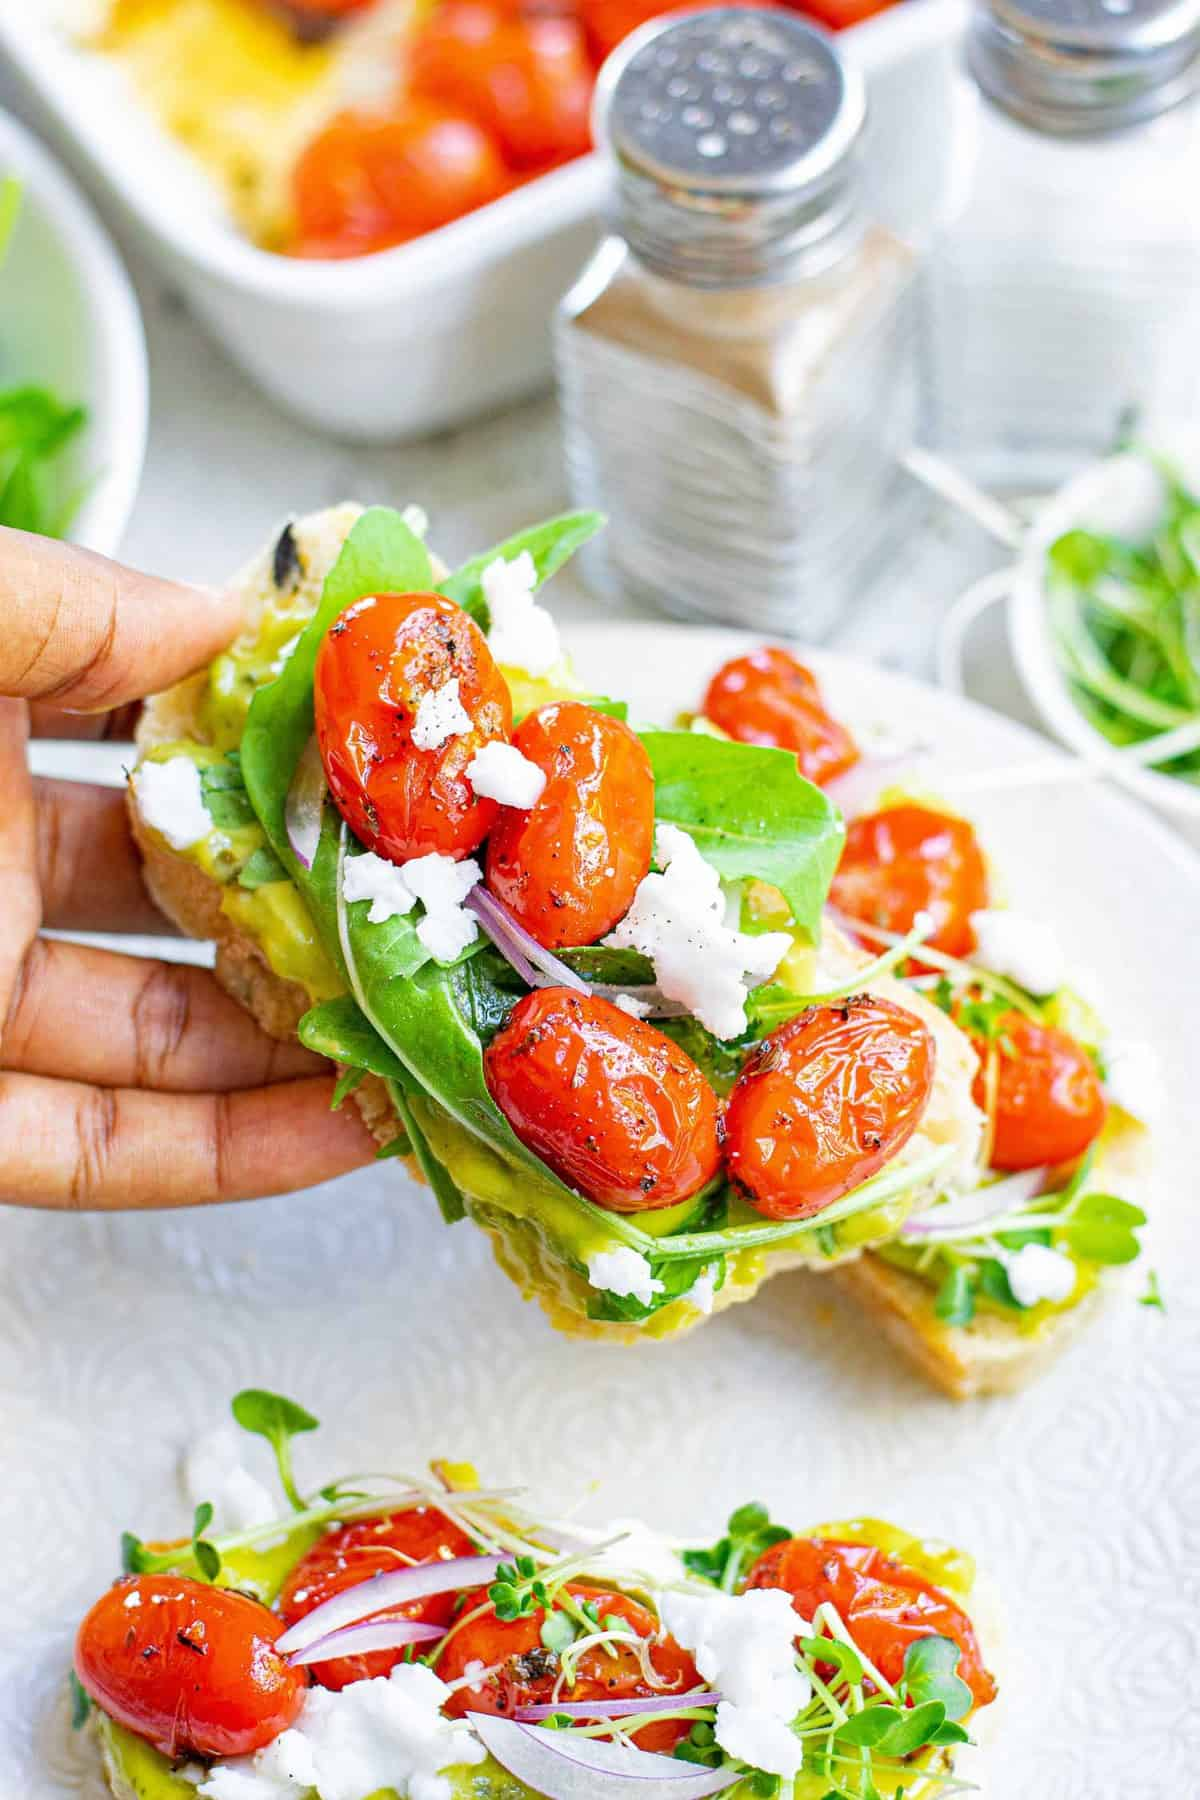 Hand holding a piece of toast topped with avocado, tomato, feta, and greens.